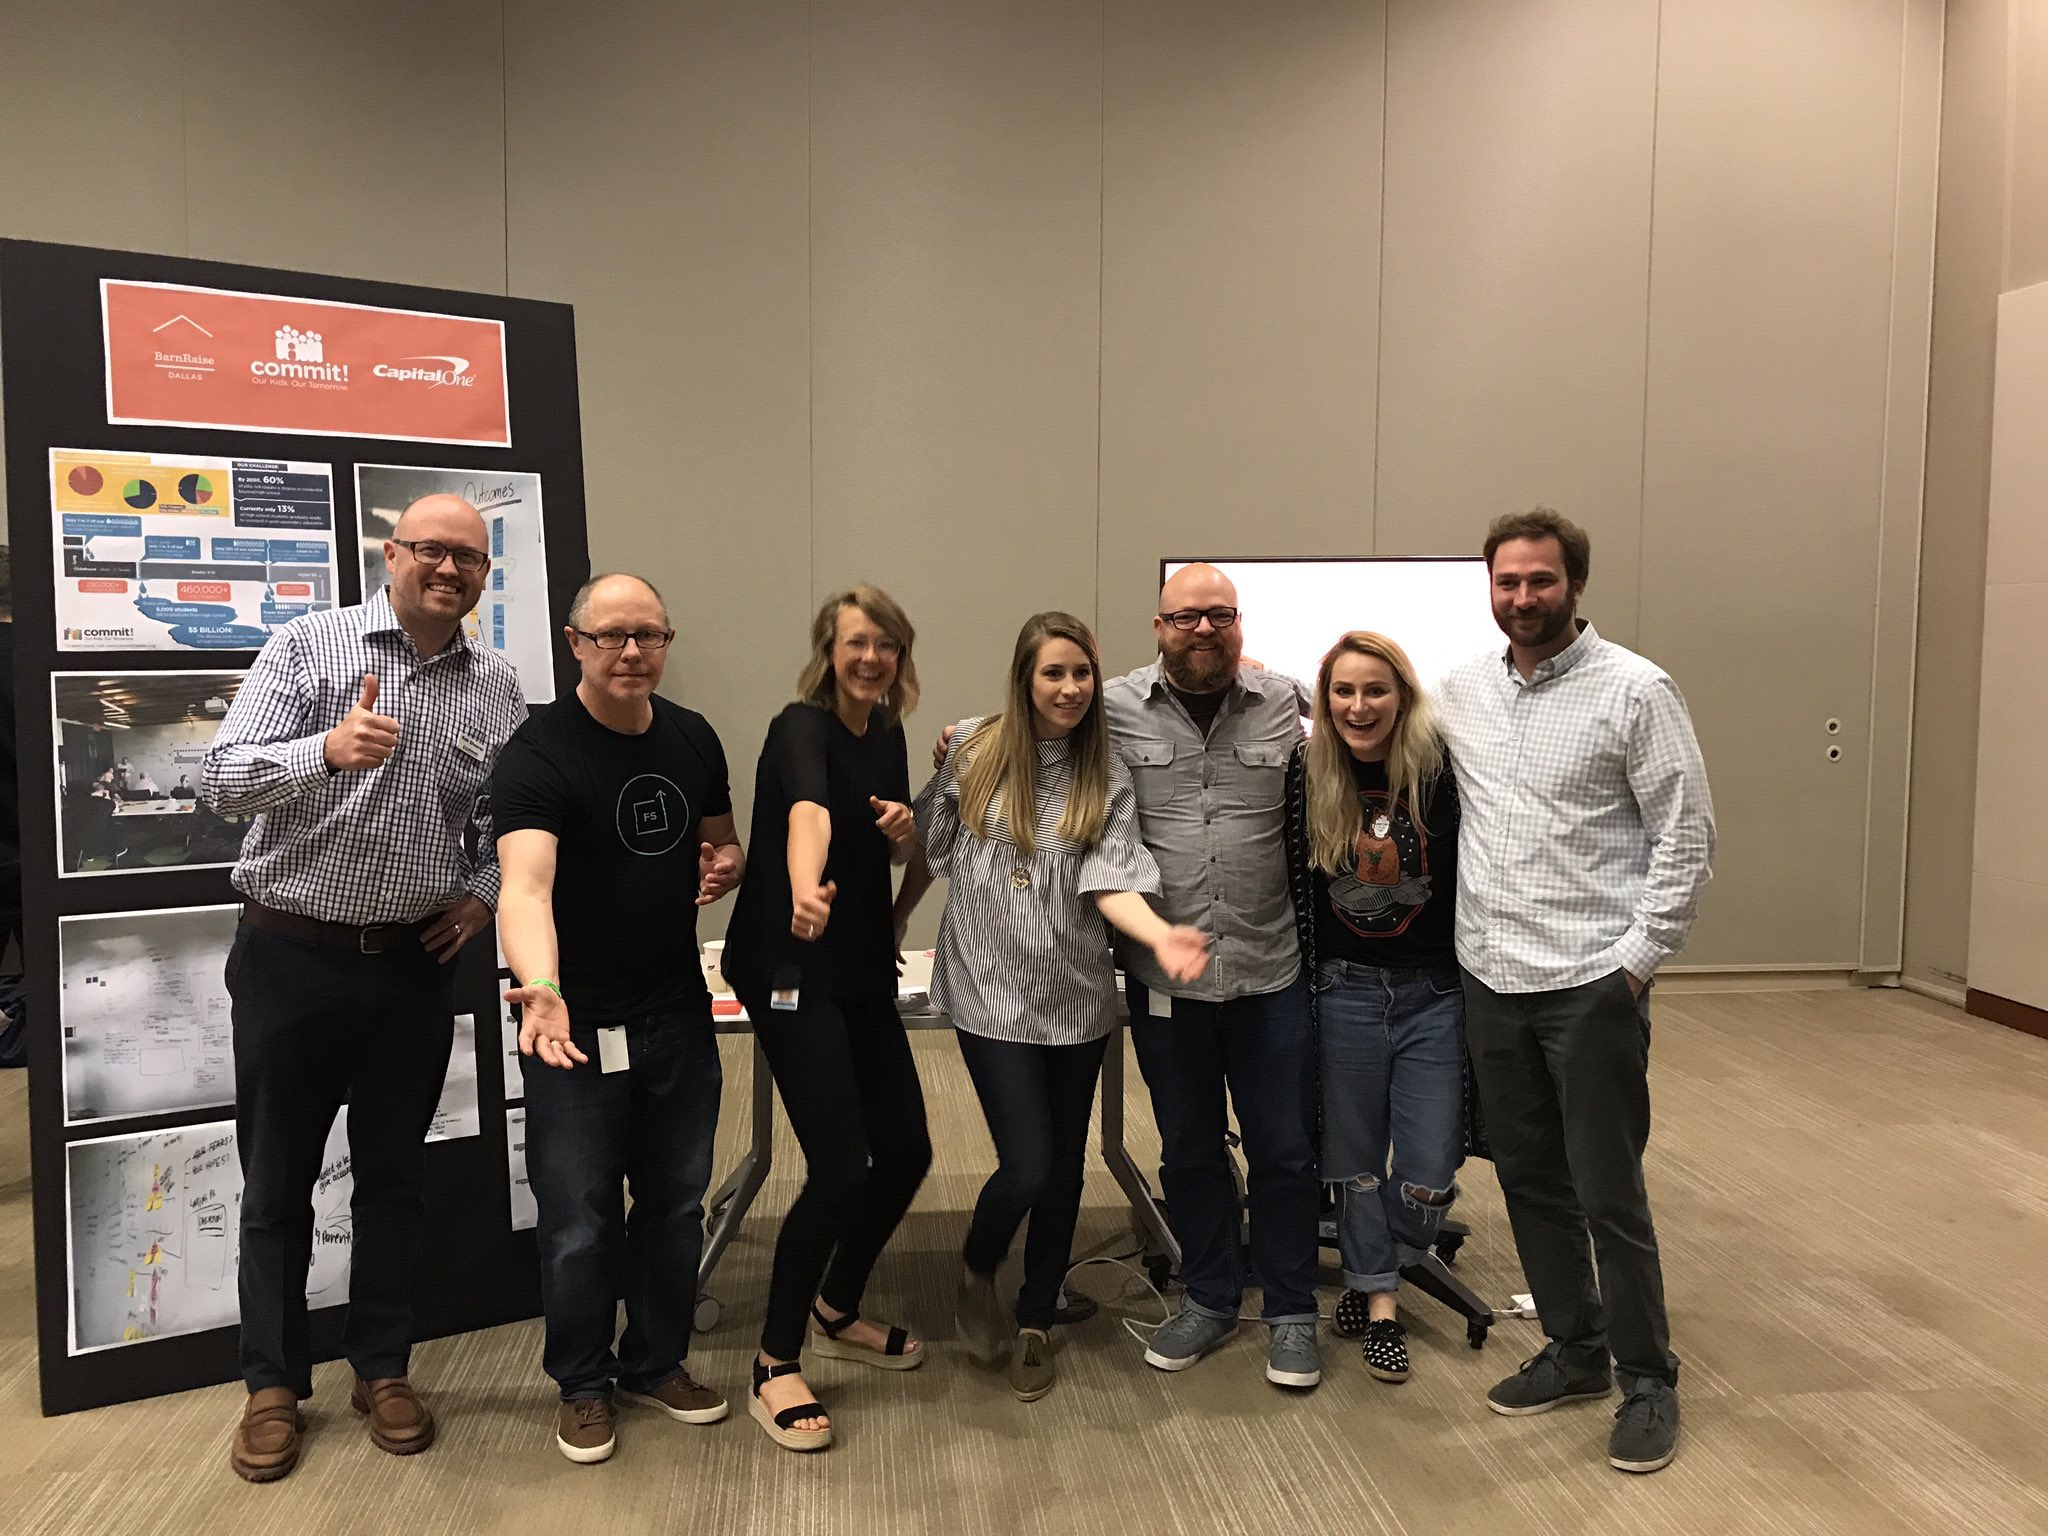 My hilarious group for BarnRaise hosted by Capital One. Together we helped create a structure and pipeline for our nonprofit Commit to use to raise awareness for kindergarten enrollment.